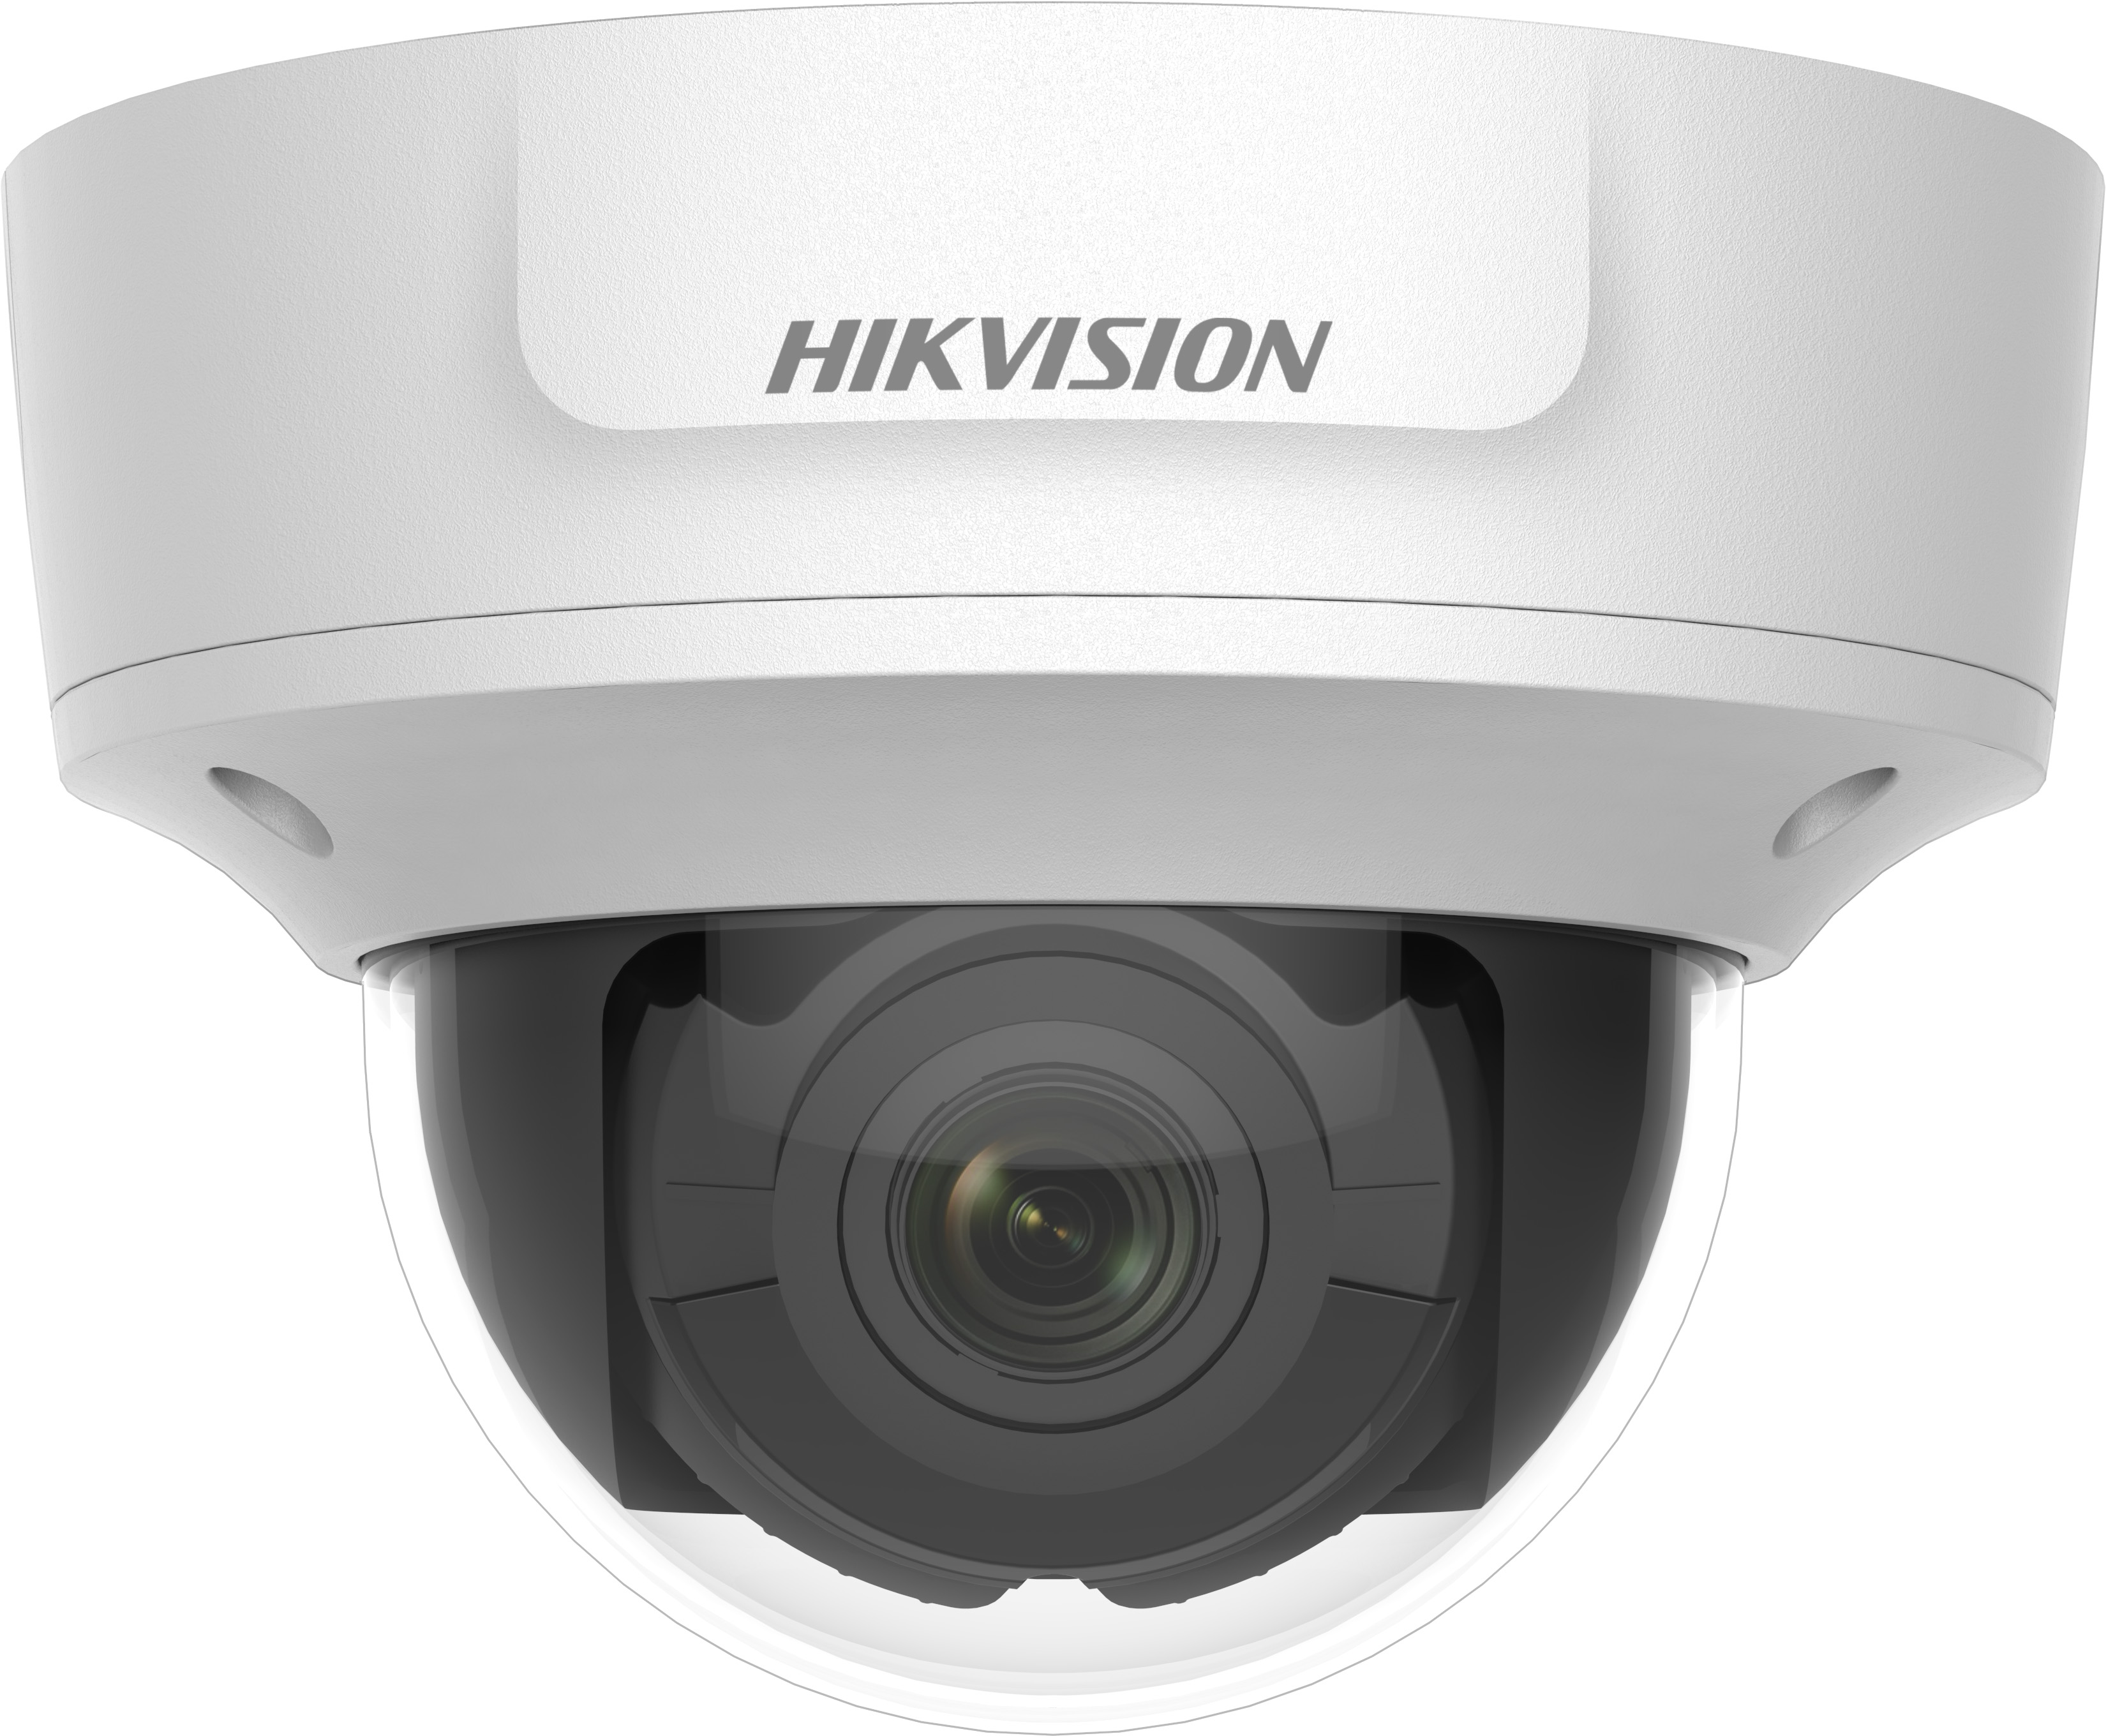 Hikvision DS-2CD1723G0-IZ 2.8-12mm